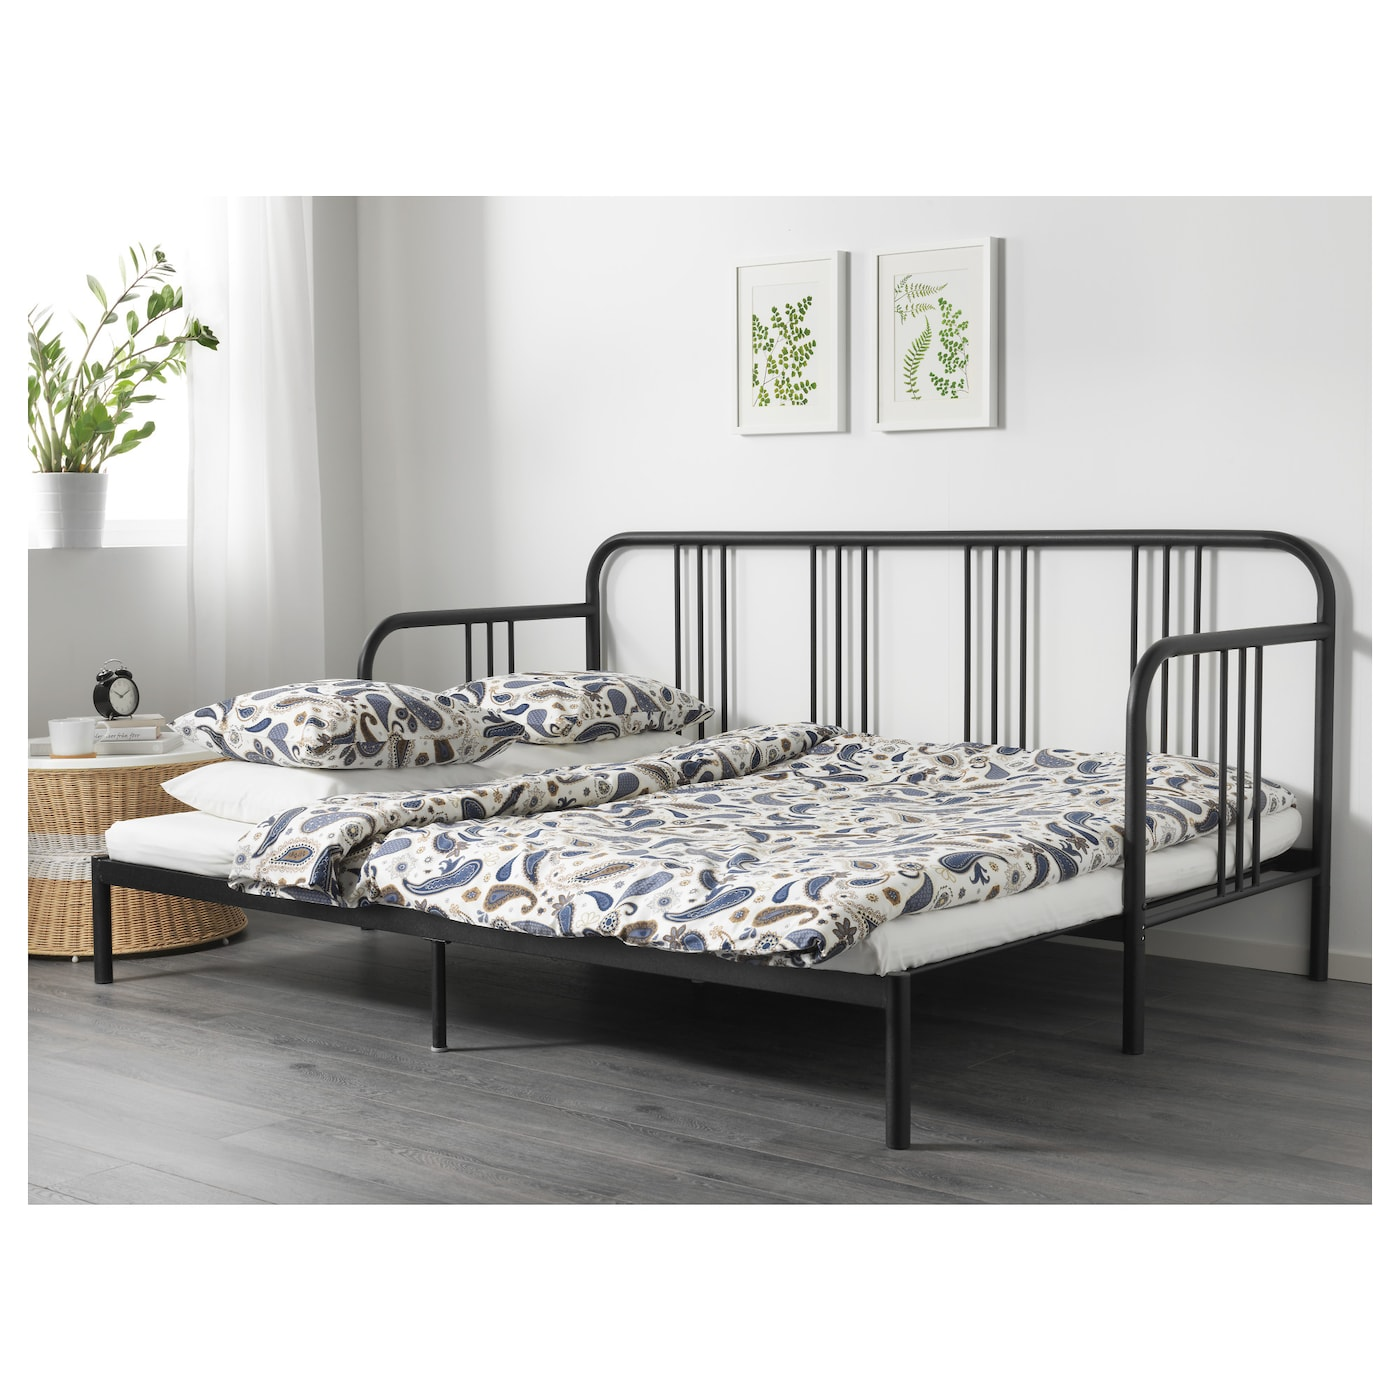 fyresdal day bed frame black 80x200 cm ikea. Black Bedroom Furniture Sets. Home Design Ideas